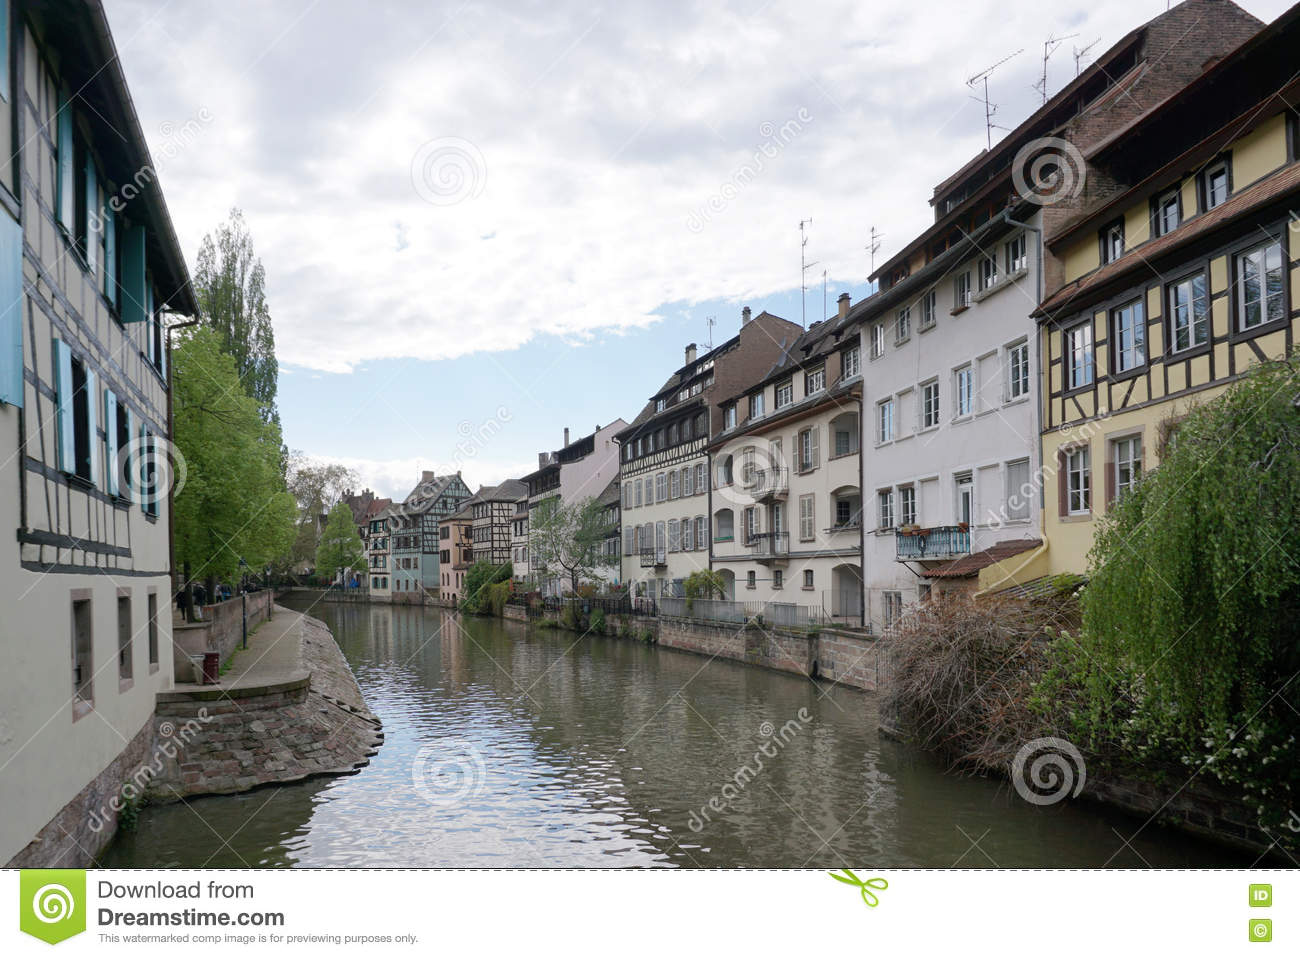 Beautiful building along the river in old town of Strasbourg